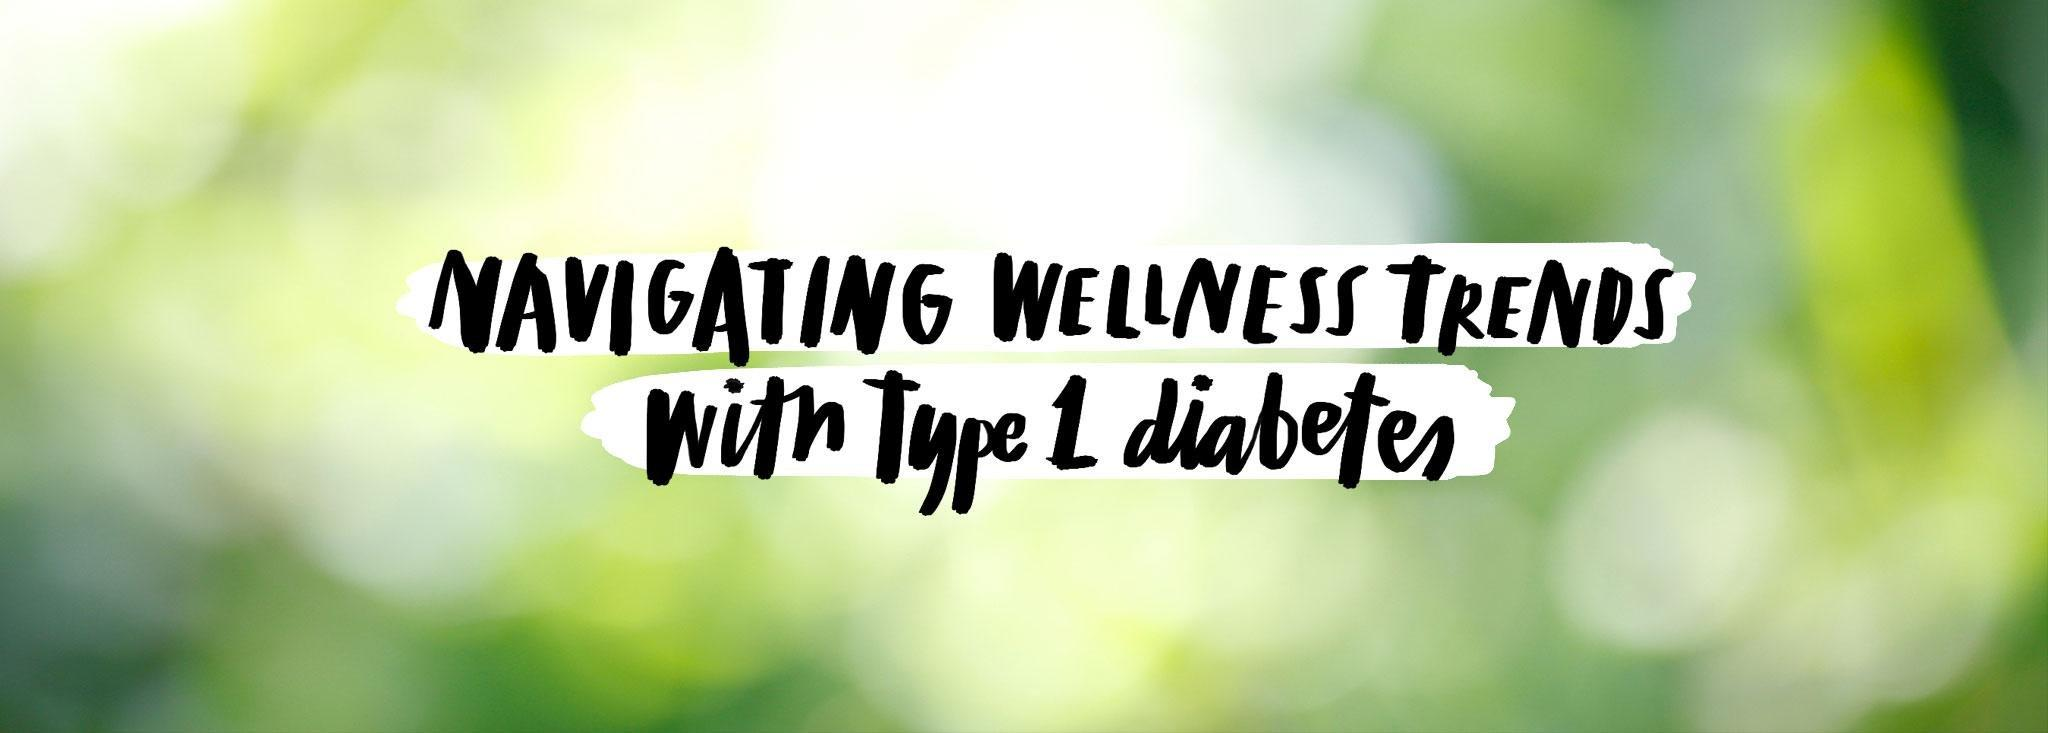 Navigating Wellness Trends with Type 1 Diabetes